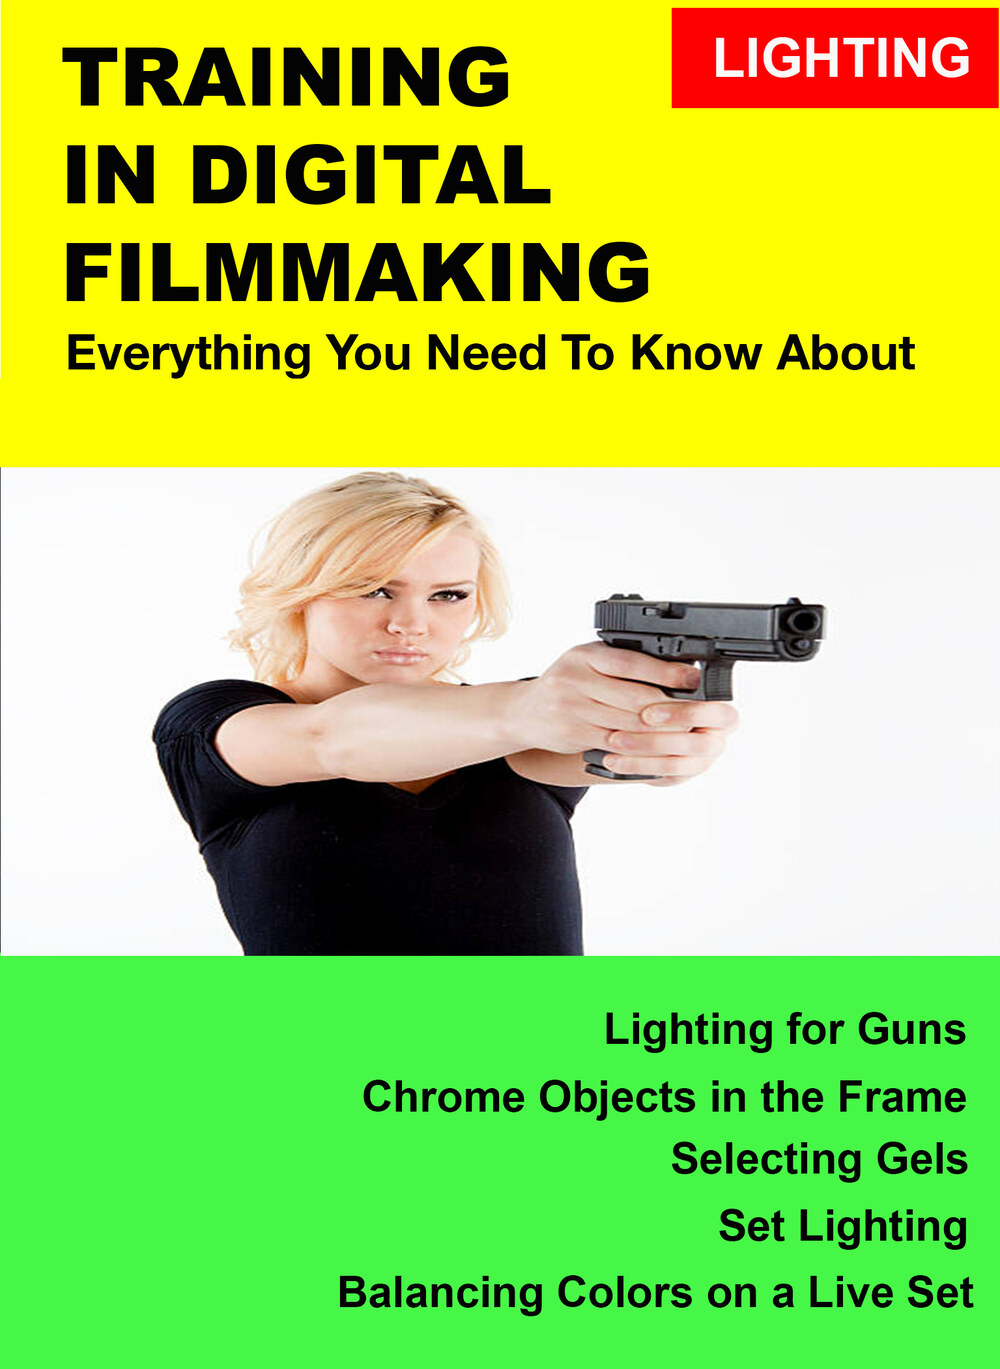 F3013 - Everything you Need to Know About Lighting on a Set - Guns & Chrome Objects in the Frame